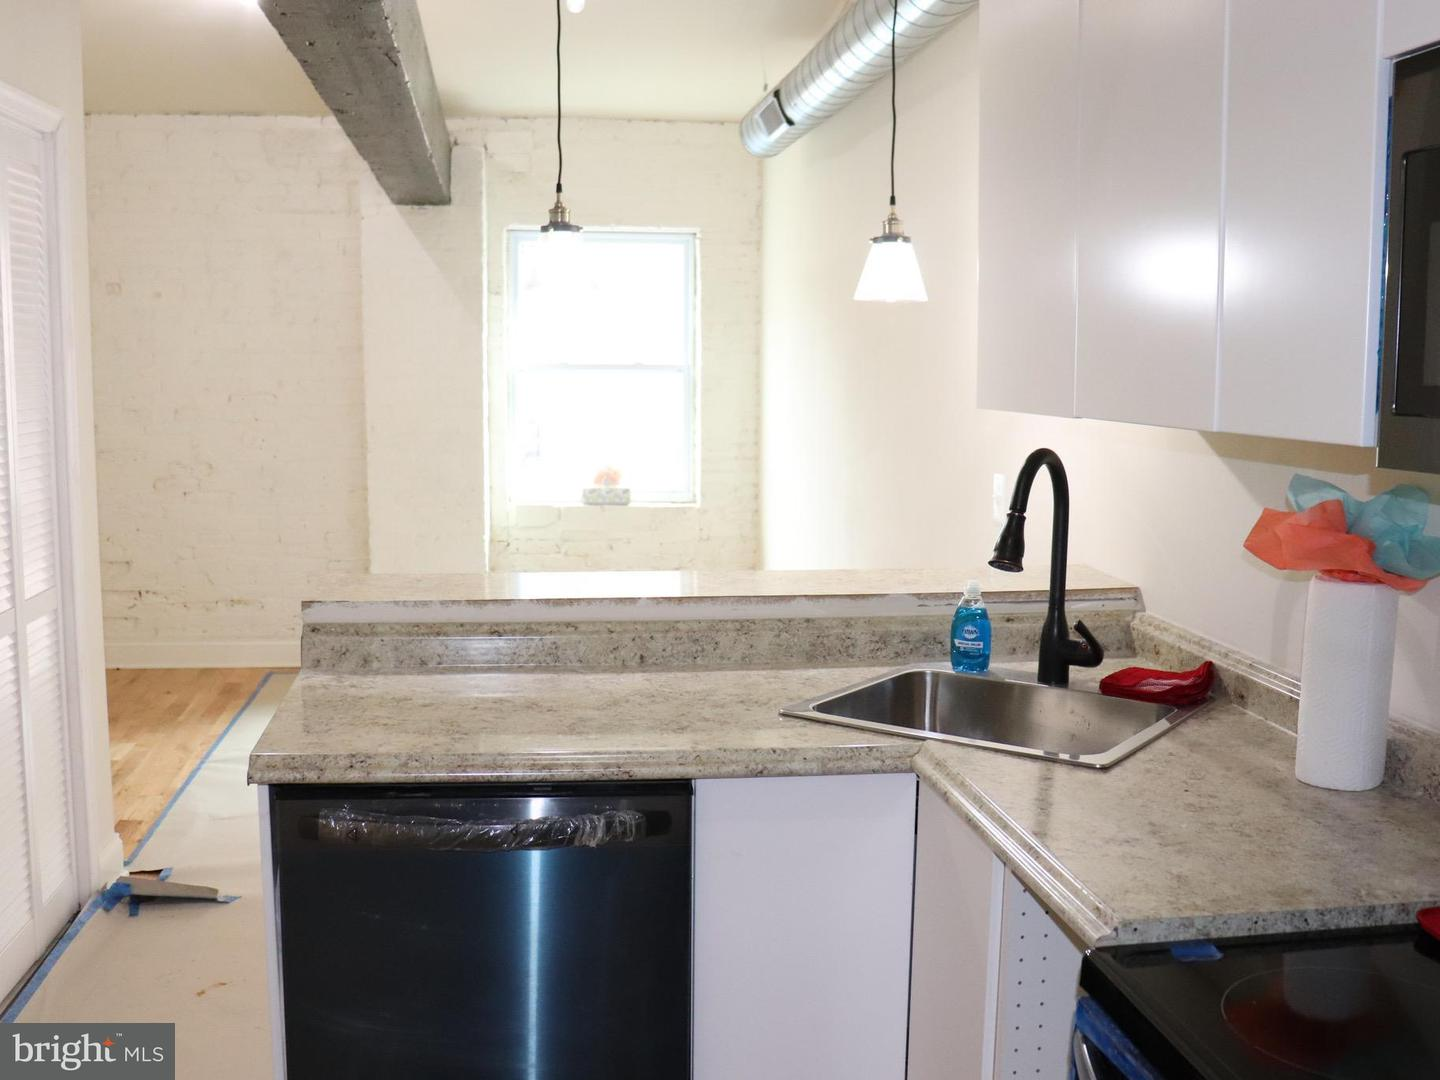 Other Residential for Rent at 124 Trenton St Baltimore, Maryland 21202 United States